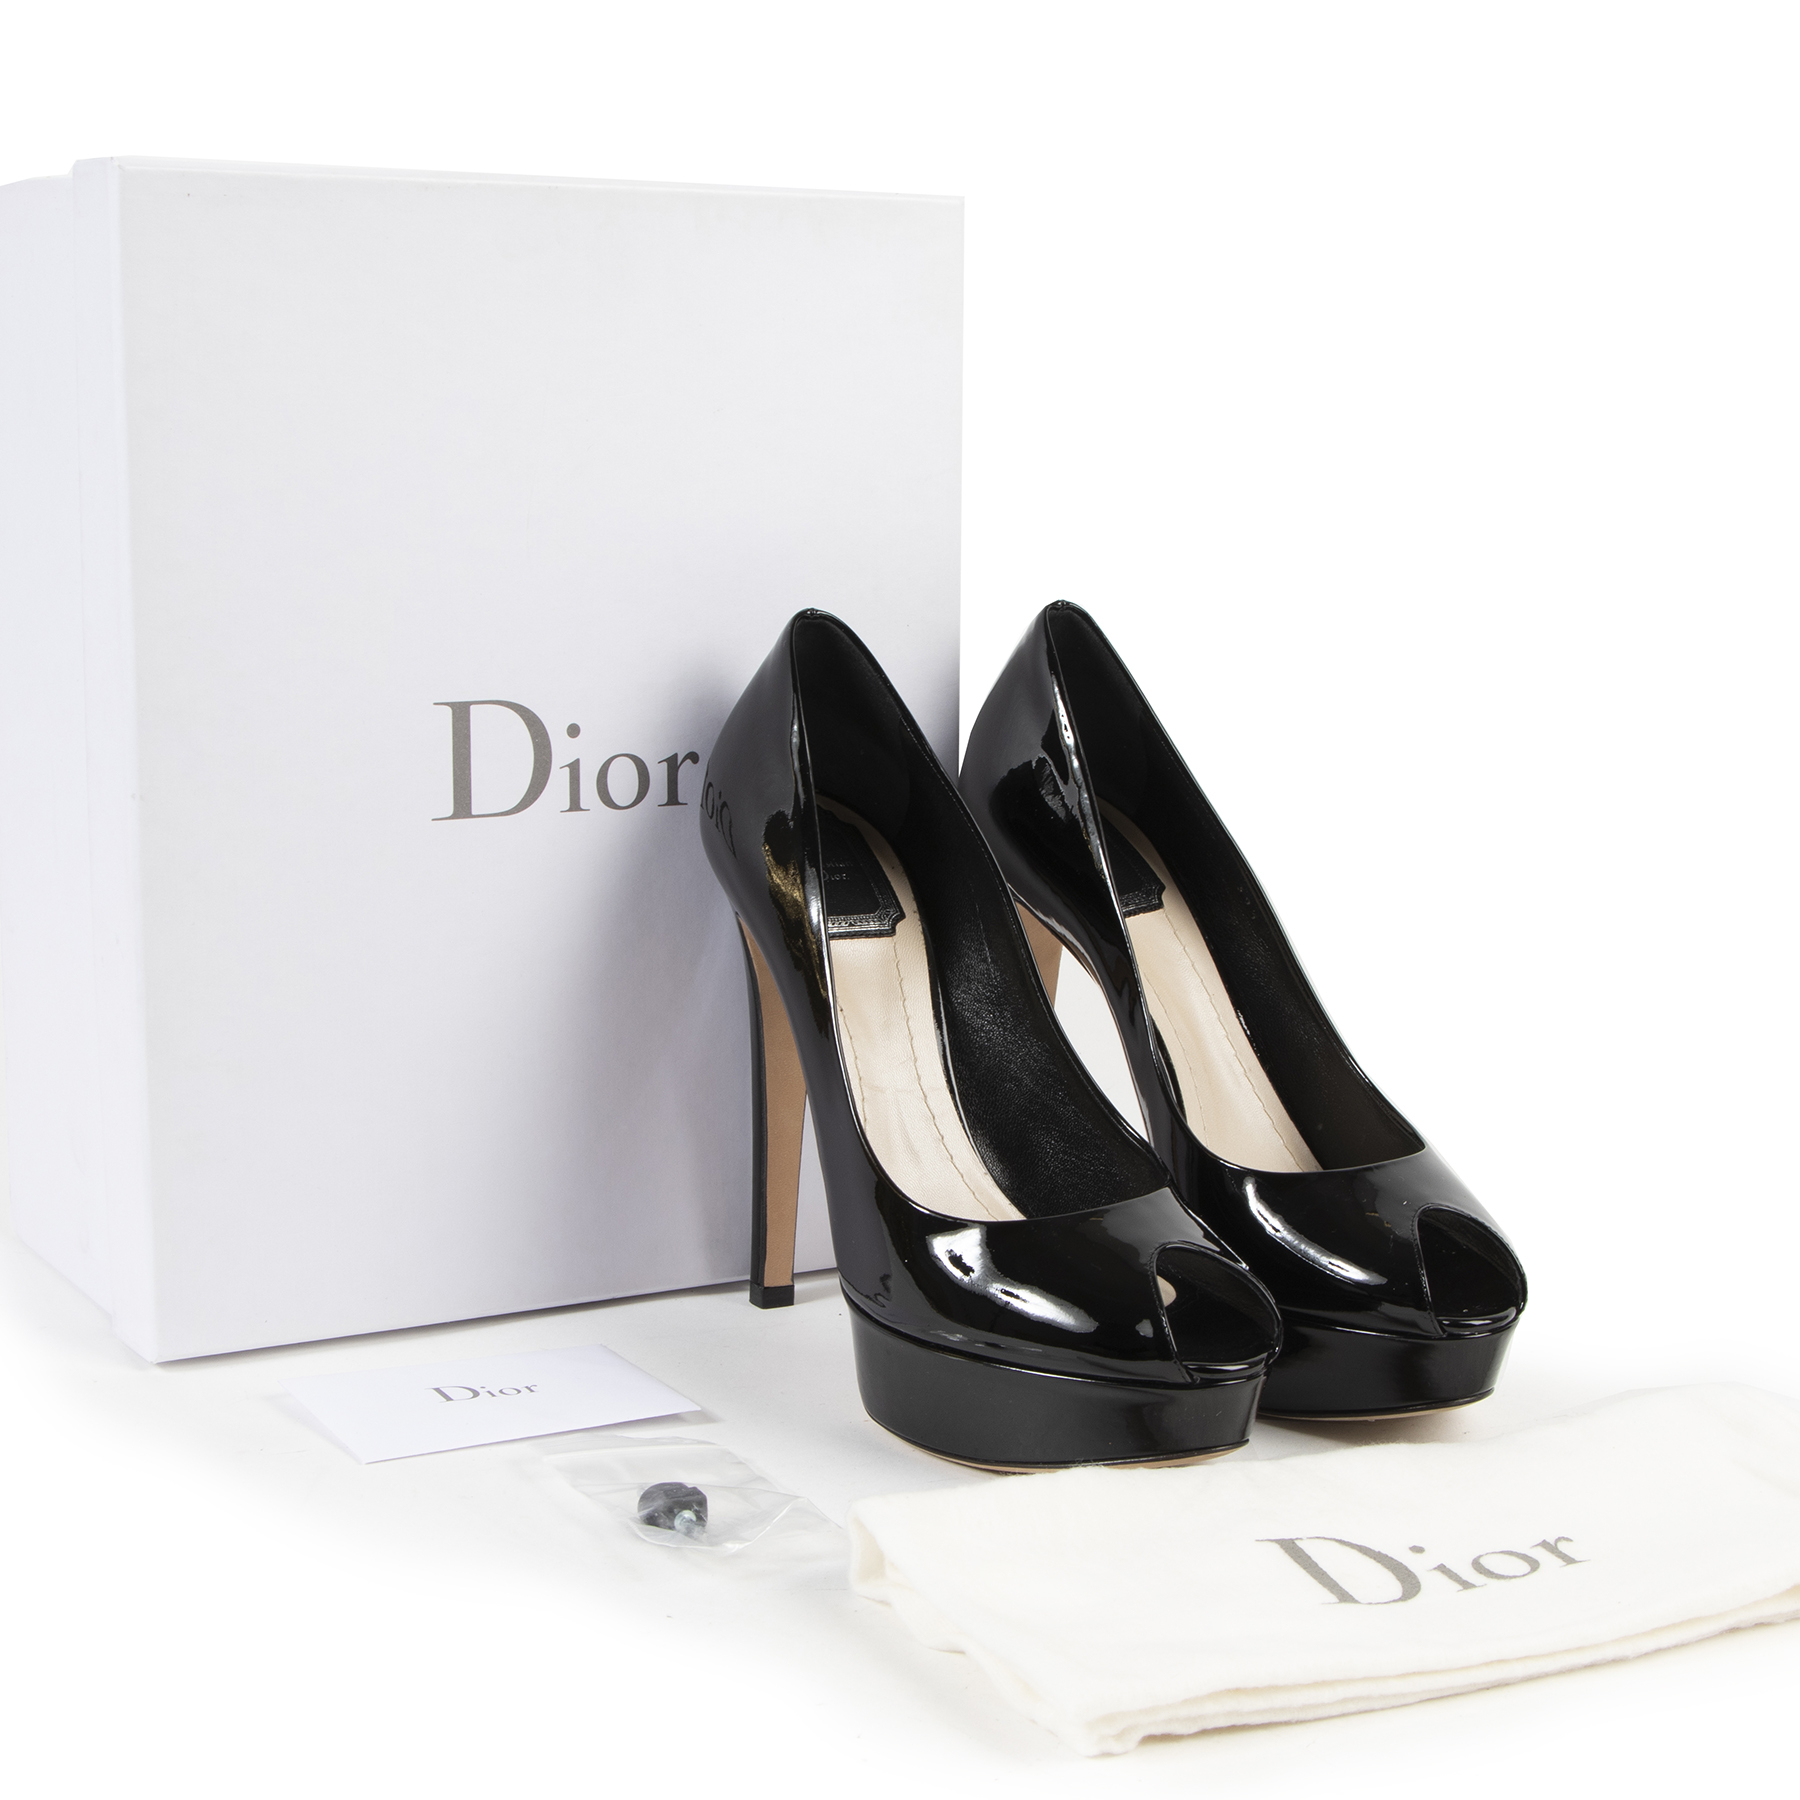 We buy and sell your authentic designer Christian Dior Black Patent Leather Platform Pumps